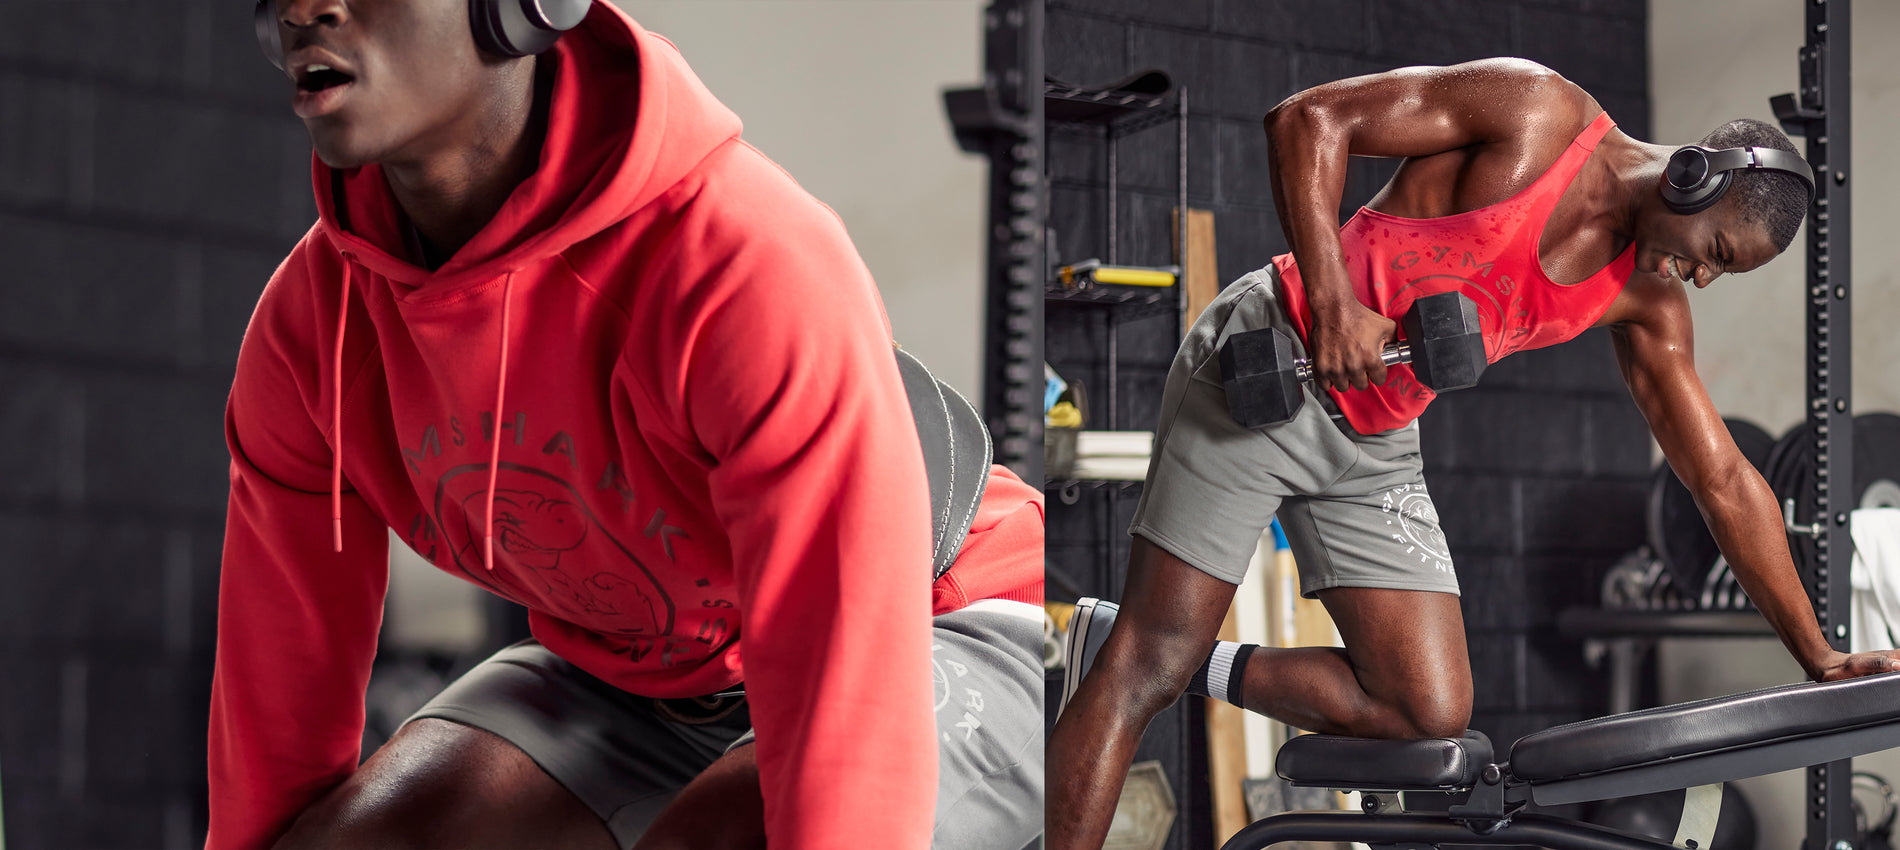 Male working out in an at home gym in his garage wearing the new Legacy collection.